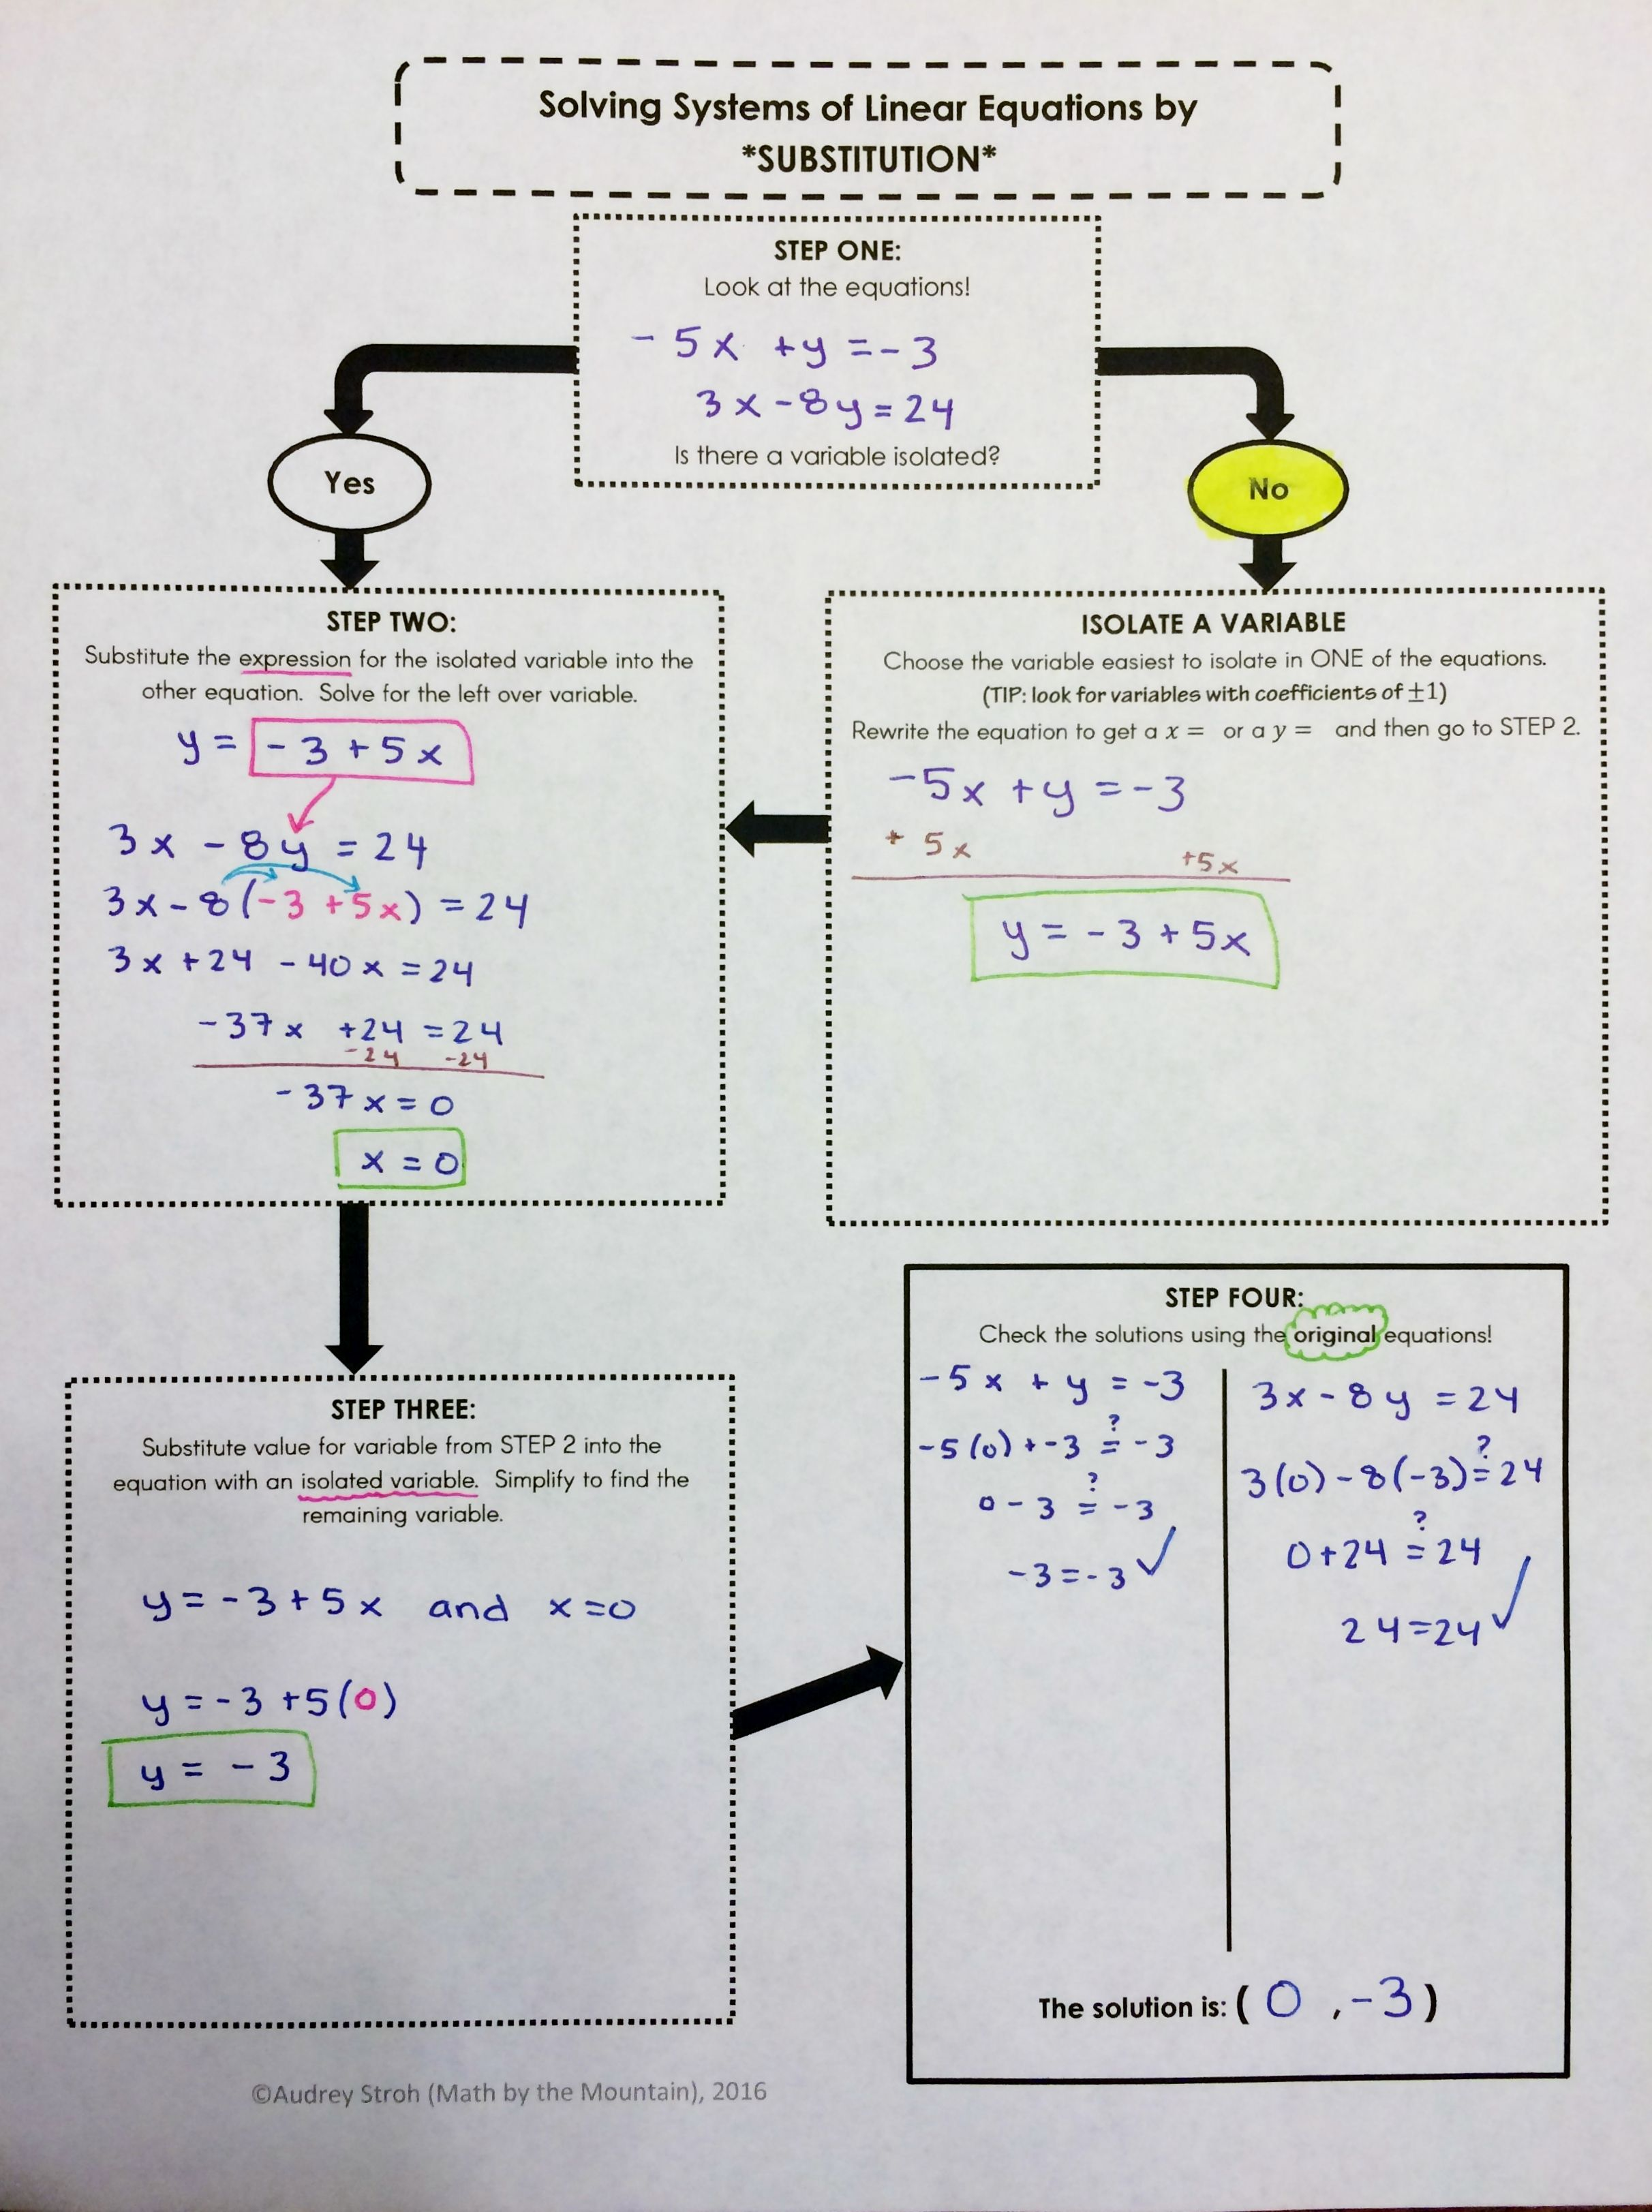 Solving Systems Of Equations By Substitution Flowchart Graphic